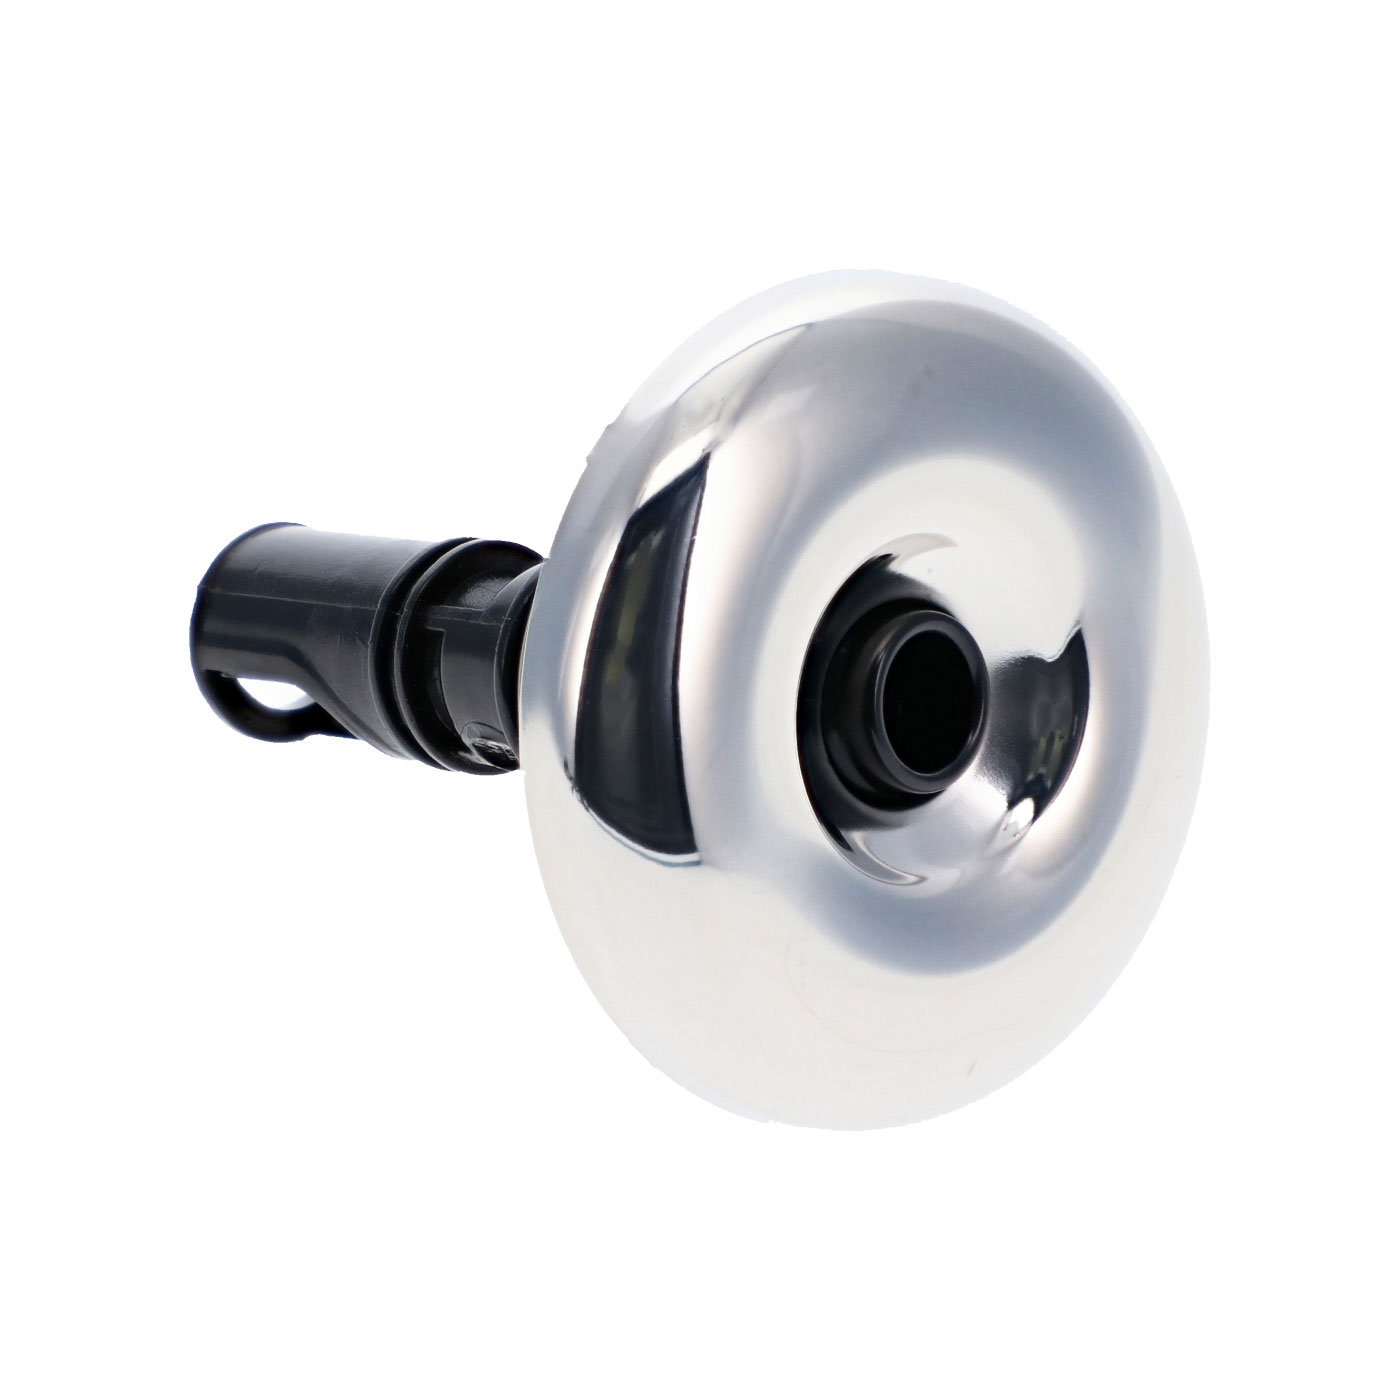 2 Inches Jets (57 mm)